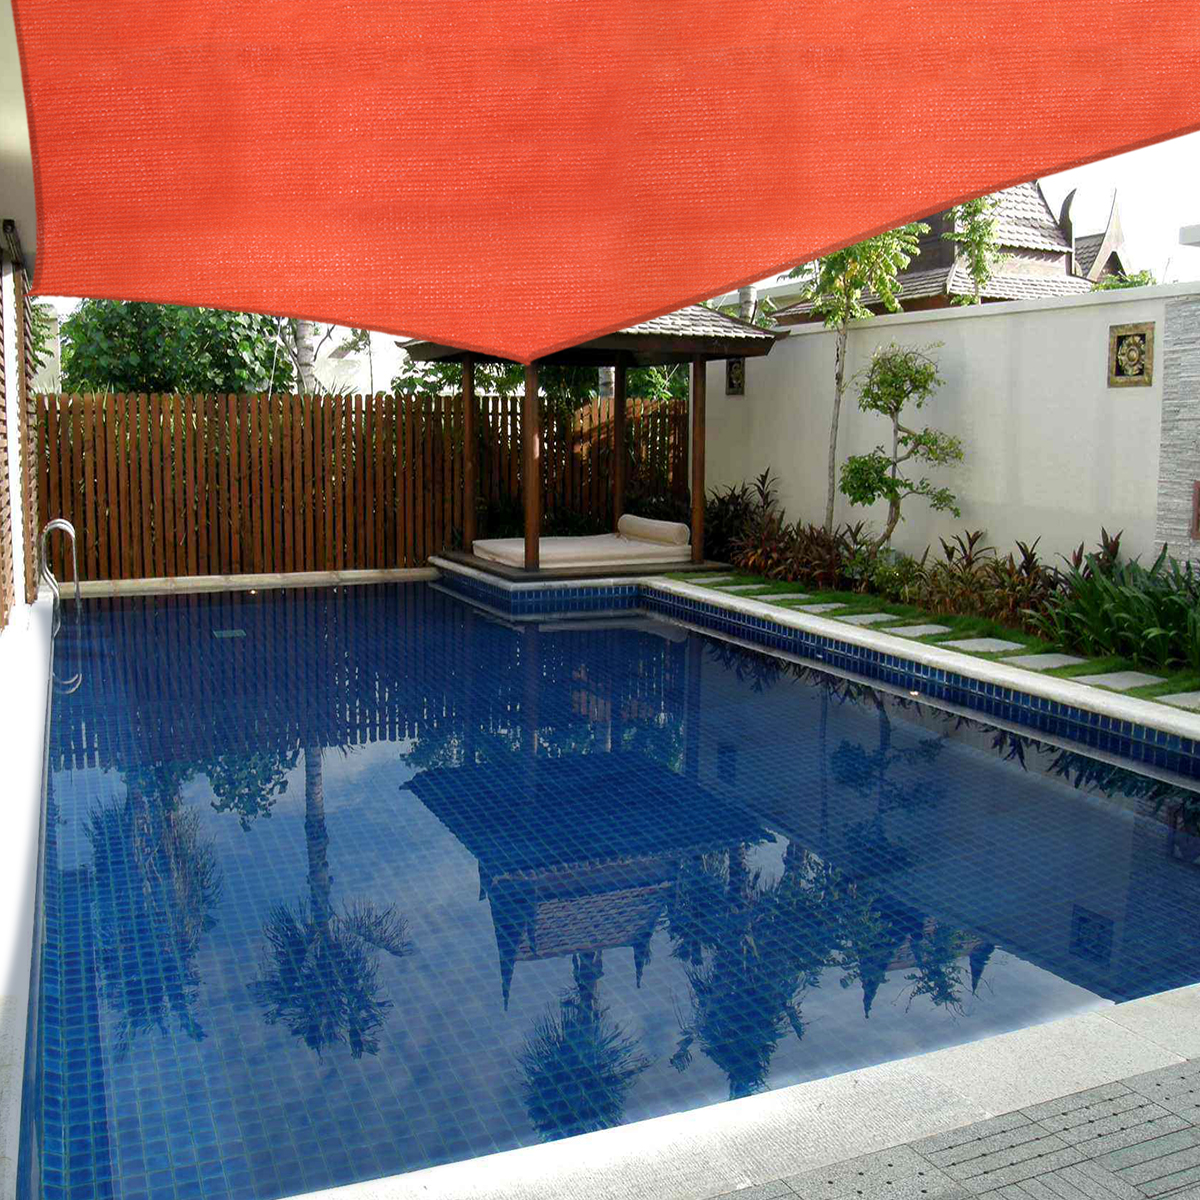 JAXPETY Sun Shade Sail Permeable Rectangle Square Outdoor Patio Deck Pool  Canopy 20\' x 16\', Red